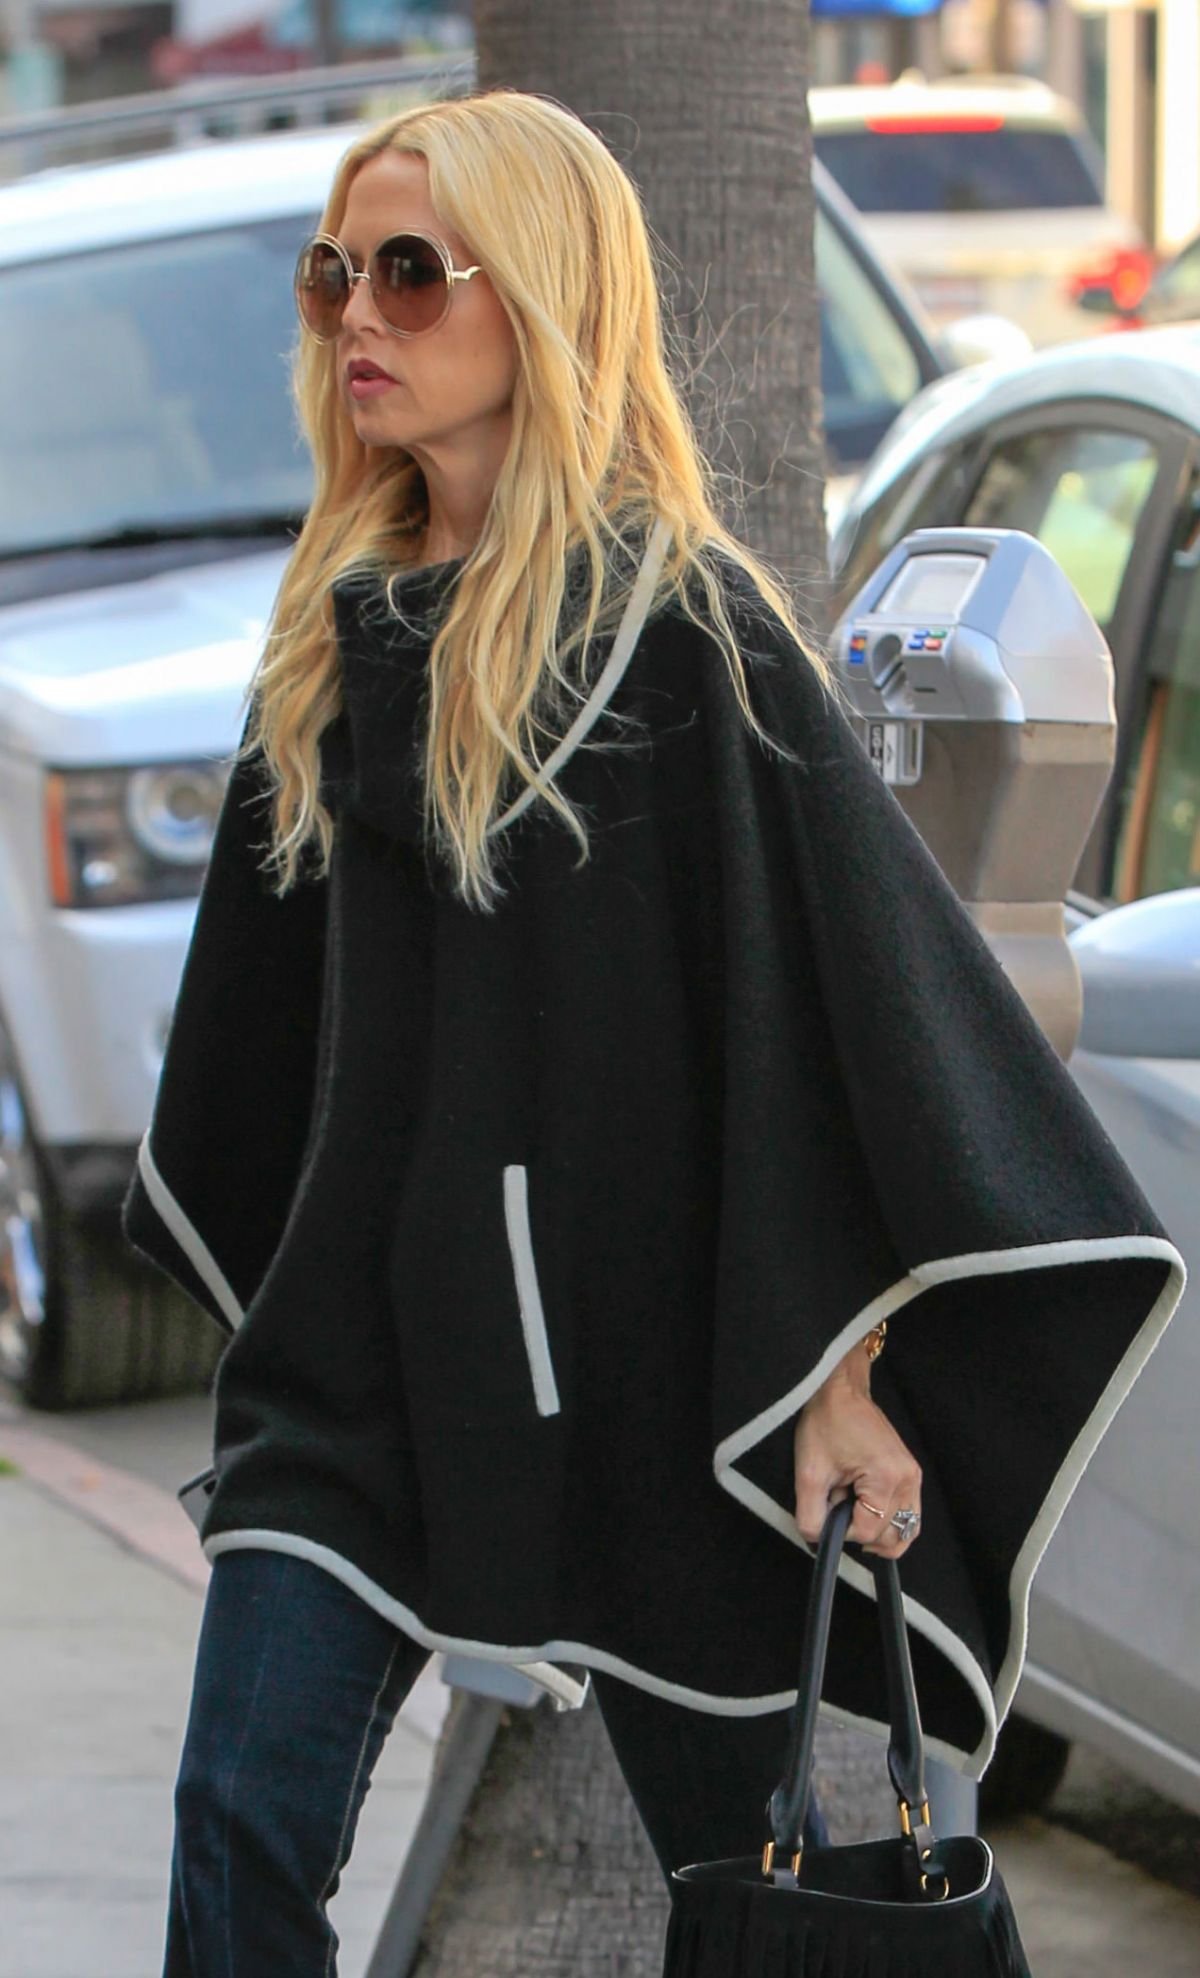 rachel zoe out and about in los angeles 01 21 2016 hawtcelebs. Black Bedroom Furniture Sets. Home Design Ideas